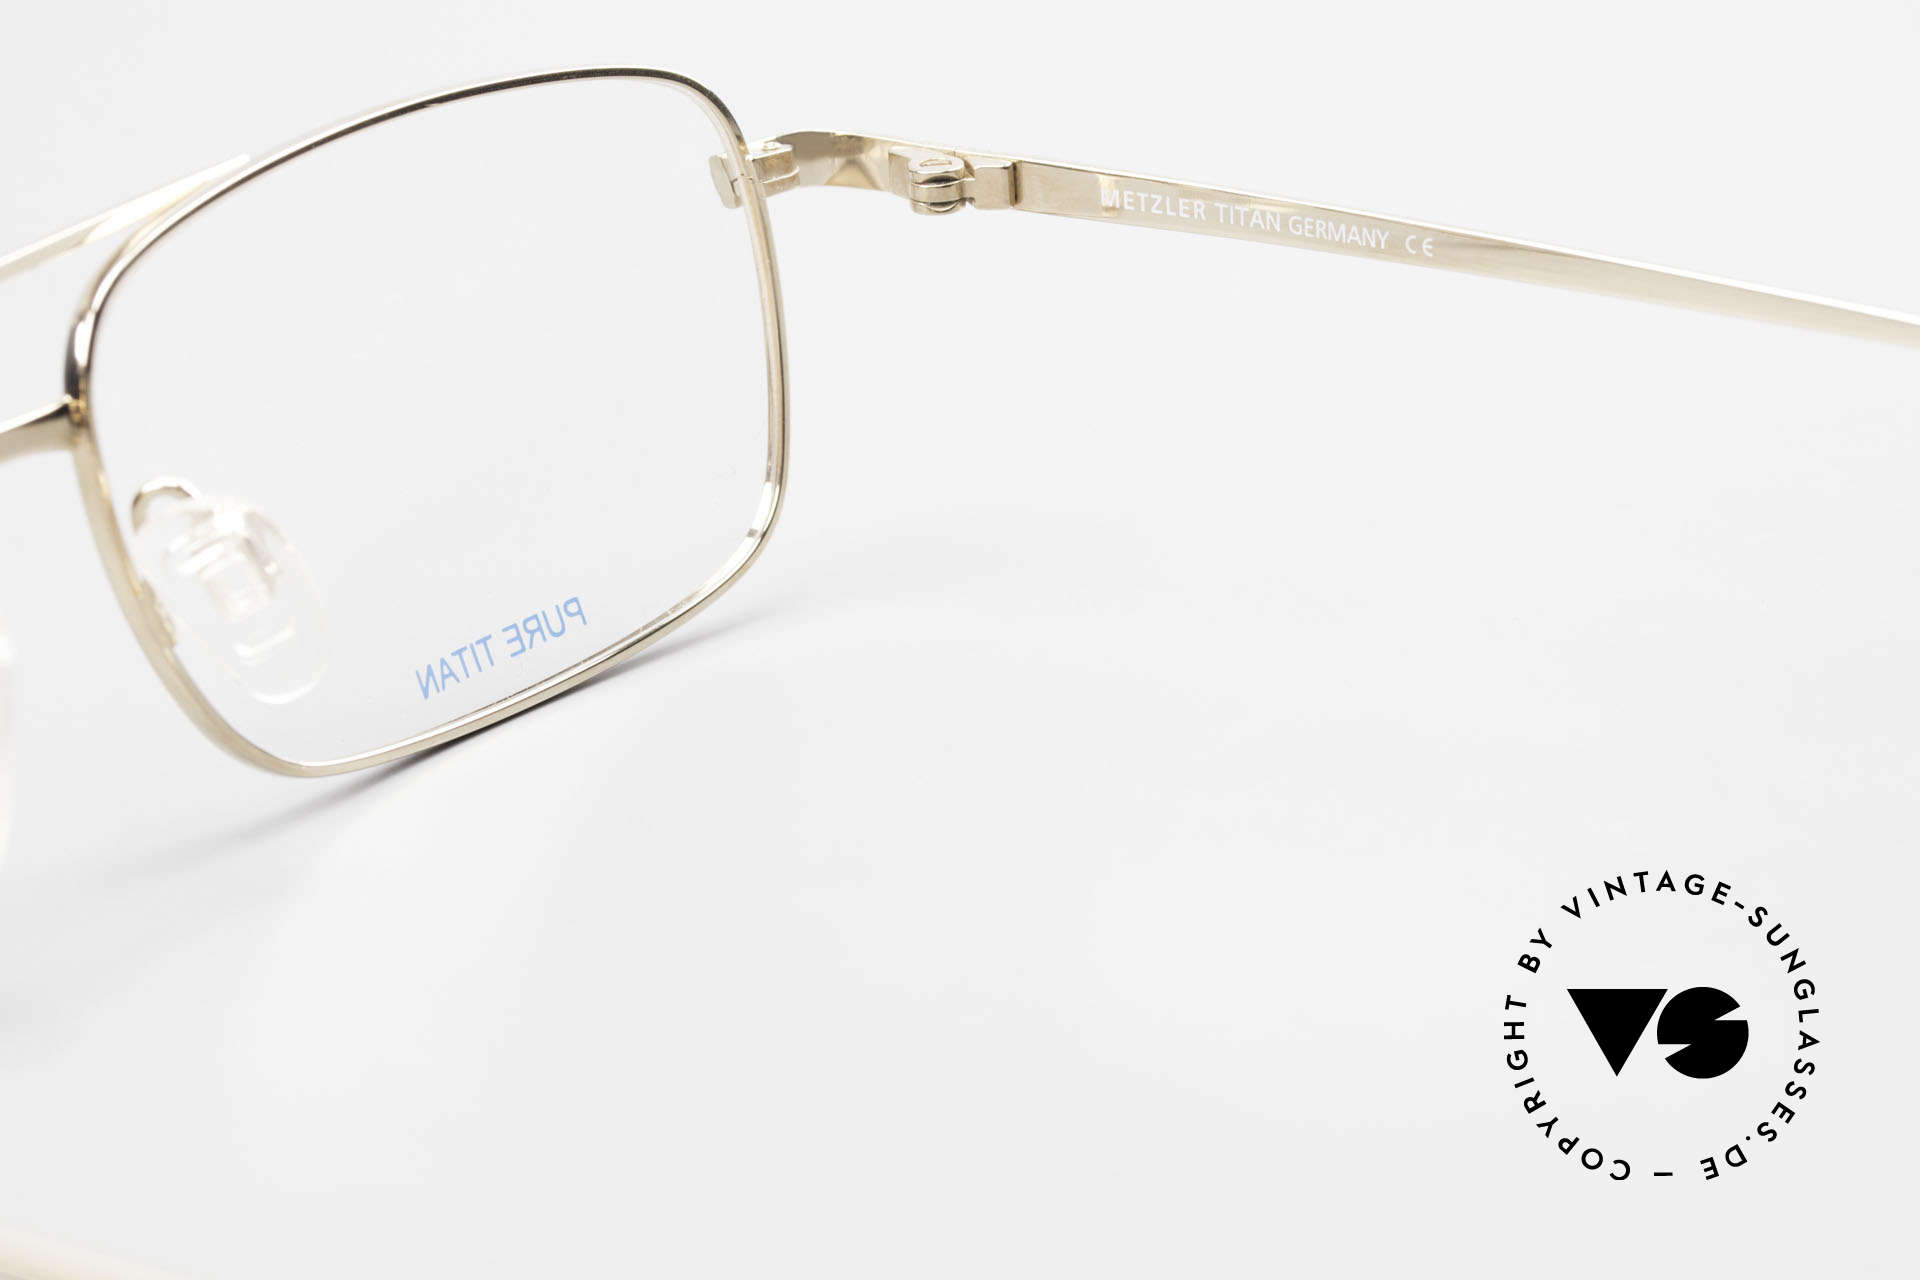 Metzler 1680 90's Titan Frame Gold Plated, Size: extra large, Made for Men